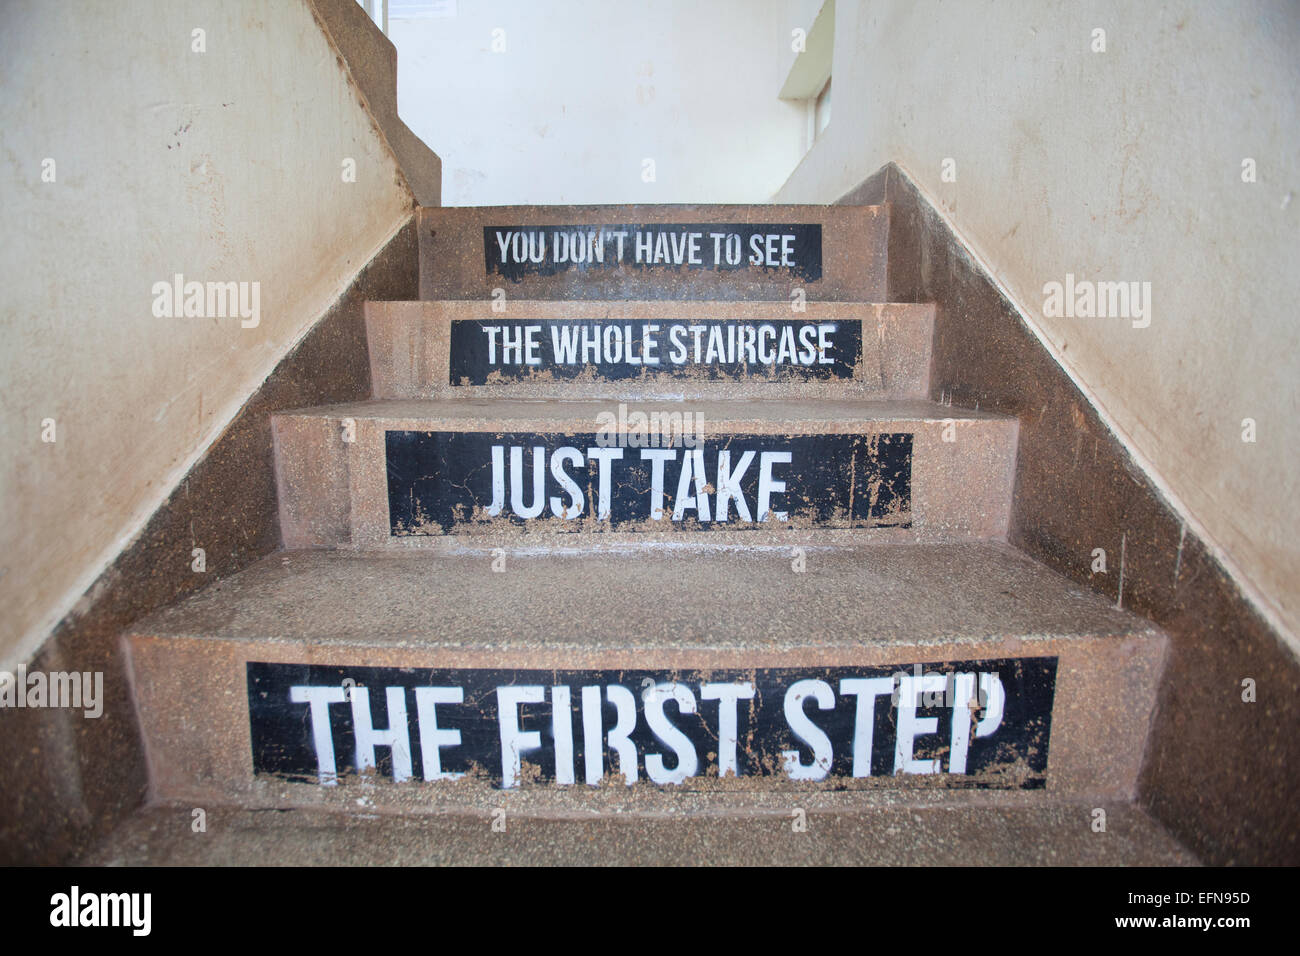 Staircase with motivational message, 'You don't have to see the whole staircase, just take the first step'. - Stock Image